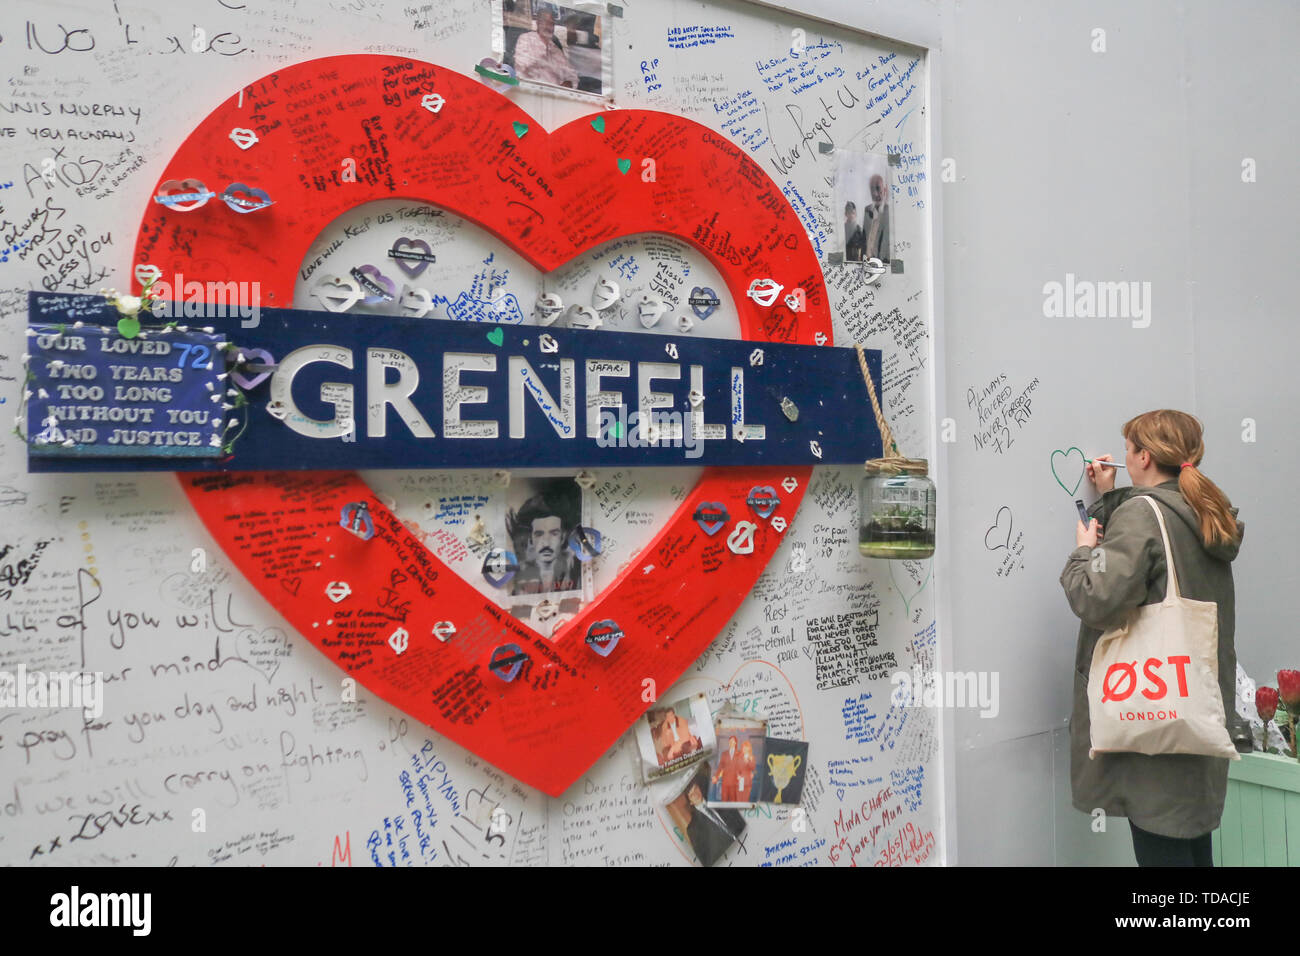 London, UK. 13th June, 2019. A member of the public writes a message of sympathy at the memorial to the Grenfell fire victims on the second anniversary of the devastating inferno fire which in the residential tower block in West London on 14 June 2017 Credit: amer ghazzal/Alamy Live News - Stock Image